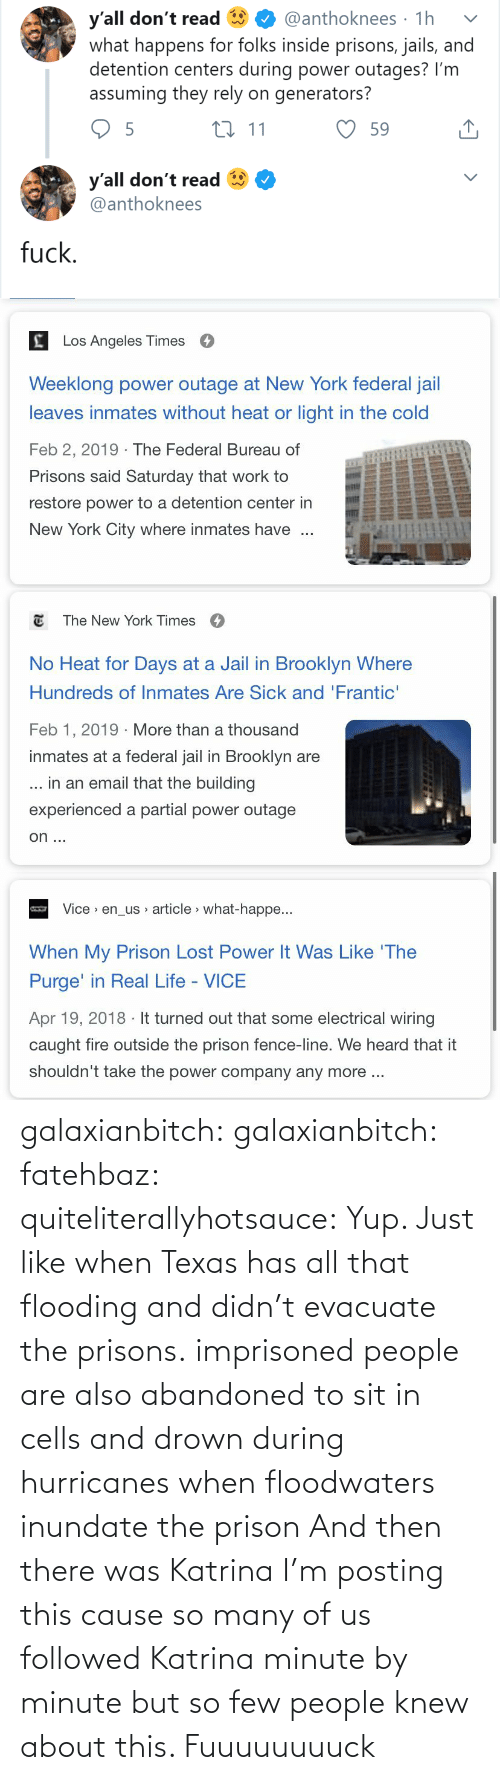 feb: y'all don't read  what happens for folks inside prisons, jails, and  detention centers during power outages? I'm  assuming they rely on generators?  @anthoknees · 1h  27 11  59  y'all don't read  @anthoknees  fuck.   Los Angeles Times  Weeklong power outage at New York federal jail  leaves inmates without heat or light in the cold  Feb 2, 2019 · The Federal Bureau of  Prisons said Saturday that work to  restore power to a detention center in  New York City where inmates have   E The New York Times  O  No Heat for Days at a Jail in Brooklyn Where  Hundreds of Inmates Are Sick and 'Frantic'  Feb 1, 2019 · More than a thousand  inmates at a federal jail in Brooklyn are  ... in an email that the building  experienced a partial power outage  on ...   Vice > en_us article > what-happe...  When My Prison Lost Power It Was Like 'The  Purge' in Real Life - VICE  Apr 19, 2018 · It turned out that some electrical wiring  caught fire outside the prison fence-line. We heard that it  shouldn't take the power company any more .. galaxianbitch: galaxianbitch:   fatehbaz:  quiteliterallyhotsauce:   Yup. Just like when Texas has all that flooding and didn't evacuate the prisons.   imprisoned people are also abandoned to sit in cells and drown during hurricanes when floodwaters inundate the prison   And then there was Katrina        I'm posting this cause so many of us followed Katrina minute by minute but so few people knew about this.    Fuuuuuuuuck